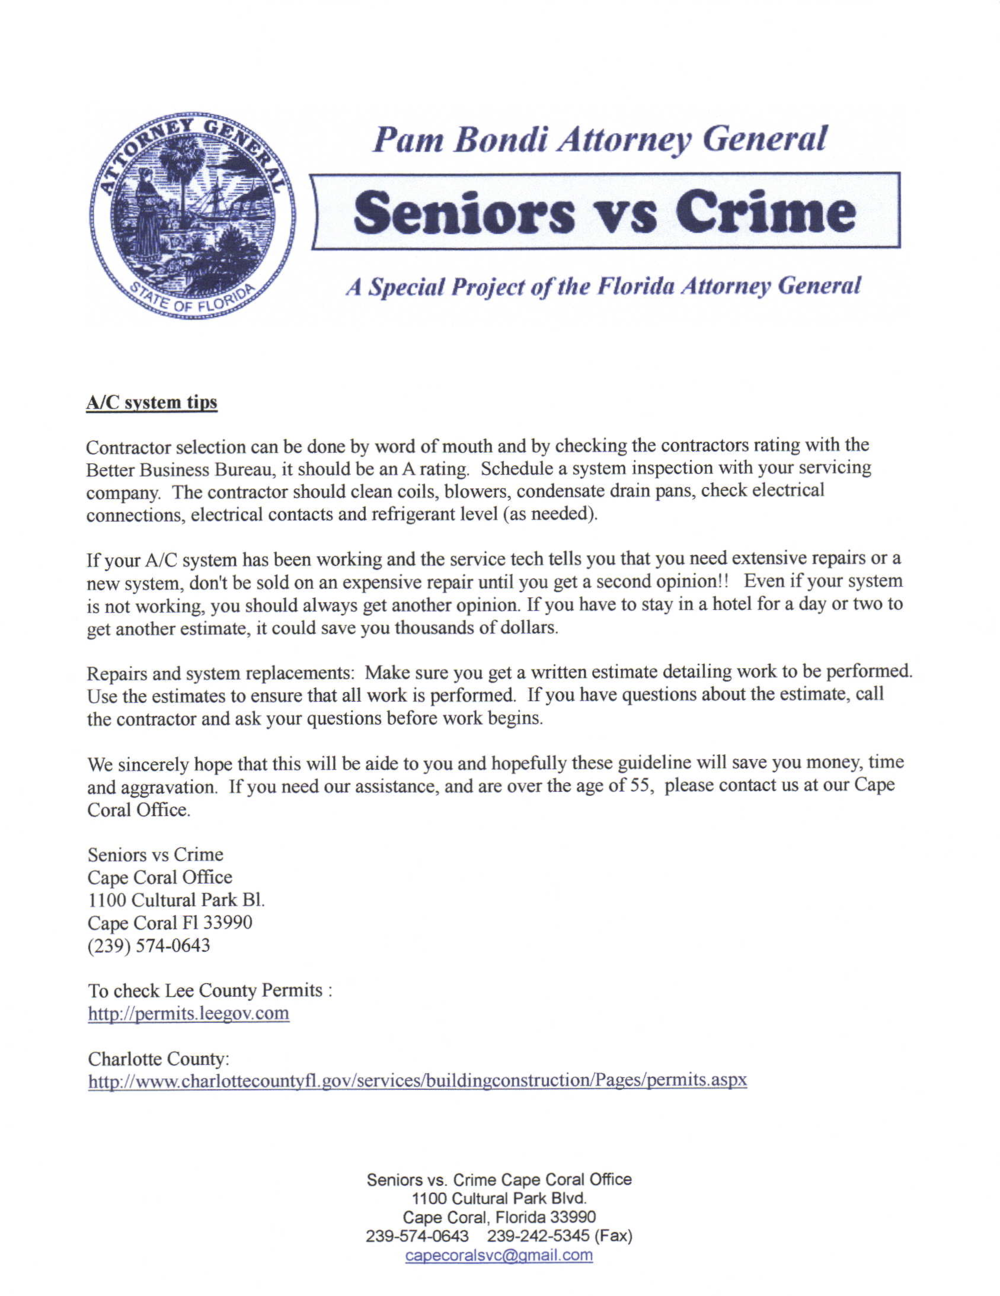 PHOTO: A Seniors vs. Crime Consumer Protection Notice from The Office of Attorney General Pam Bondi. (Photo courtesy ofCape Coral Police Department)